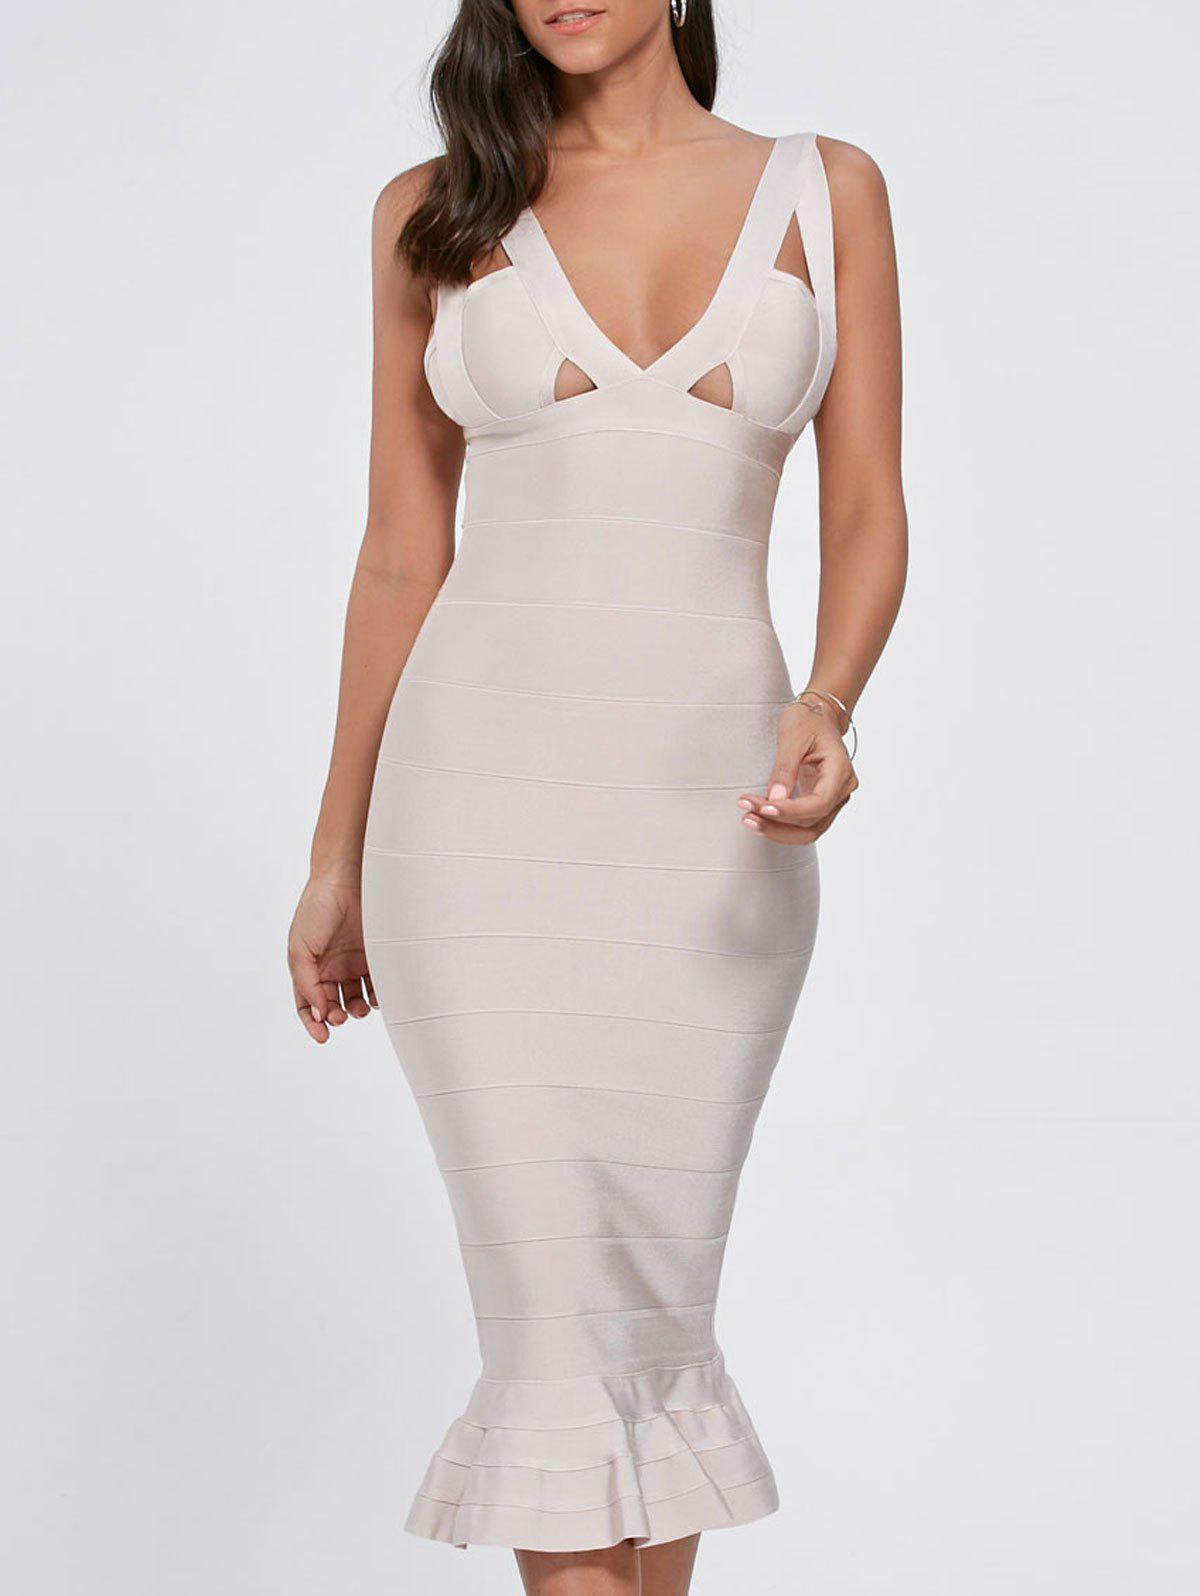 Cut Out Maxi Mermaid Bandage Dress - LIGHT BEIGE S